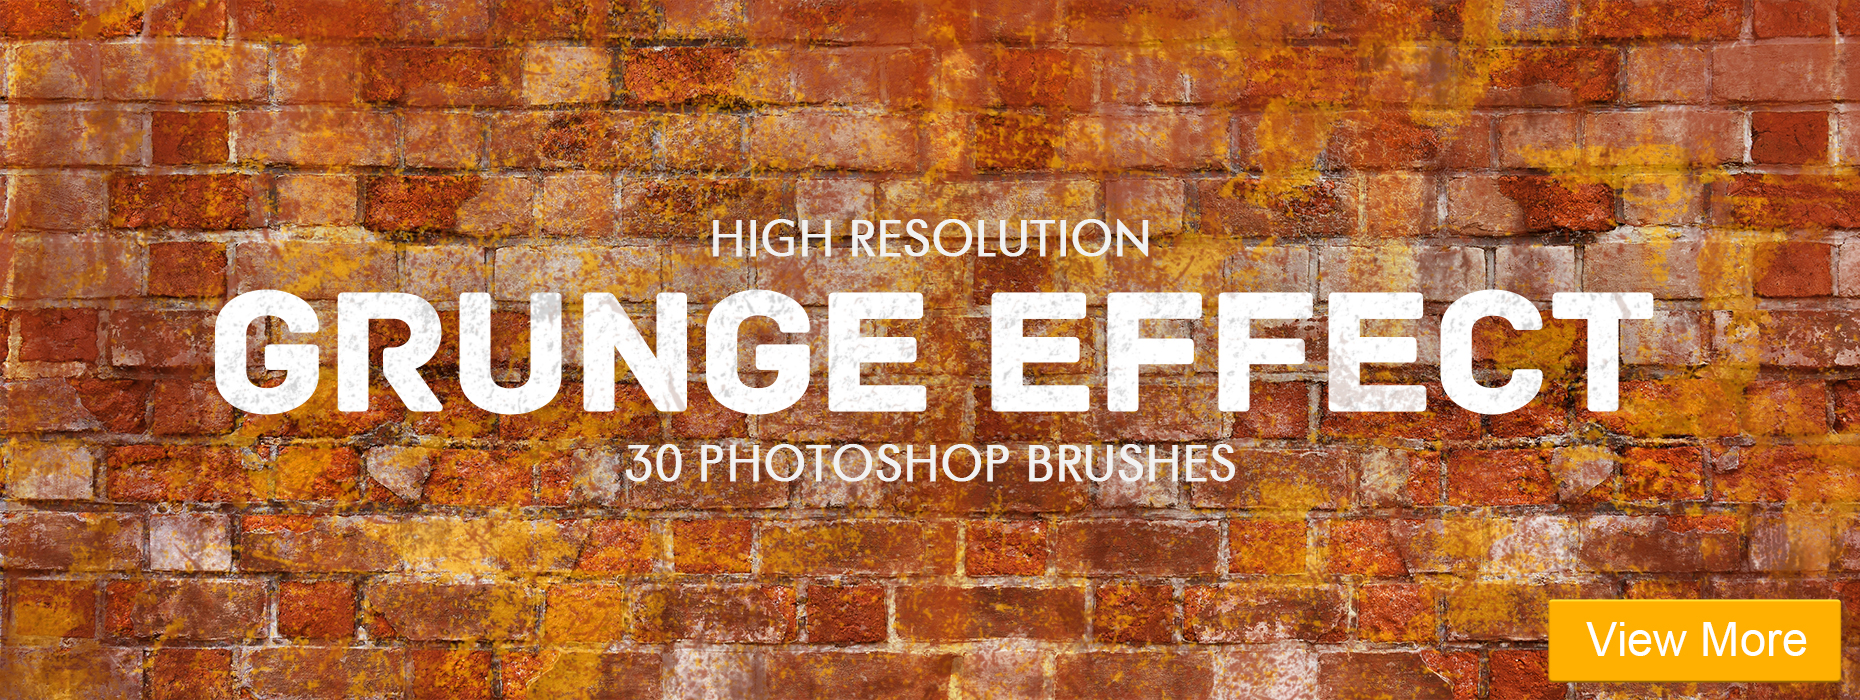 free grunge photoshop brushes high resolution grunge effect banner